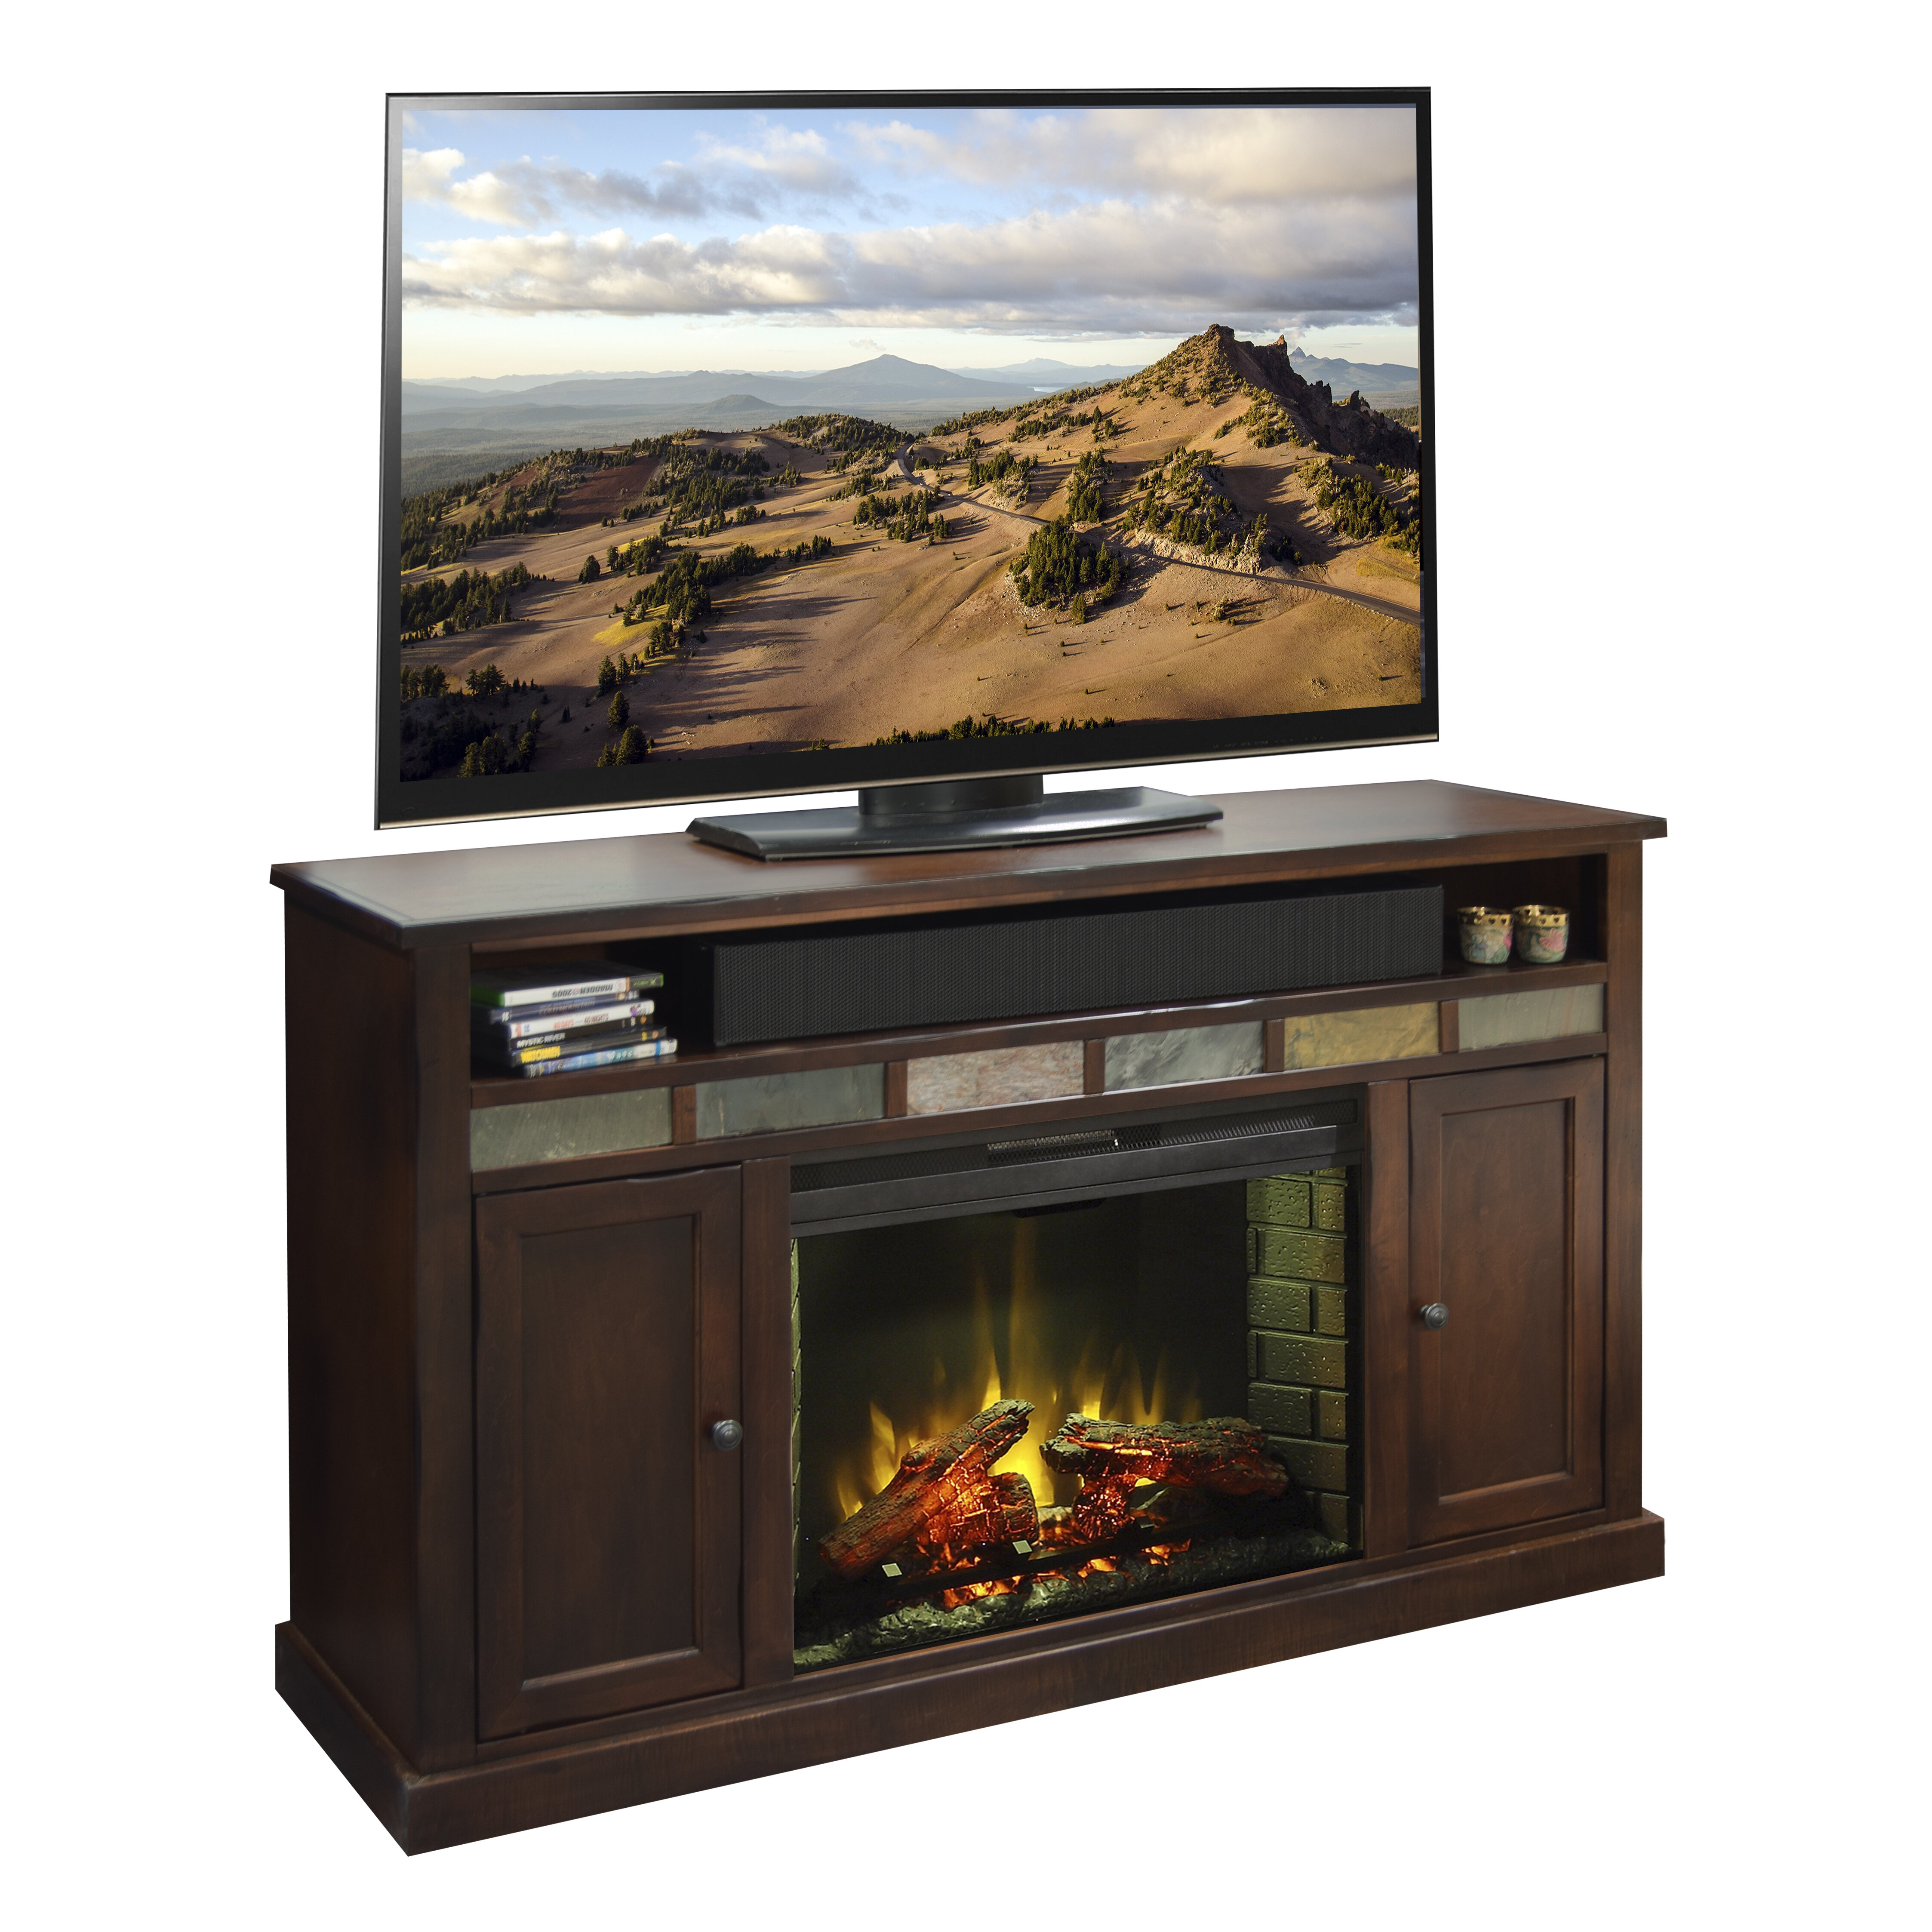 legends furniture fire creek tv stand with electric